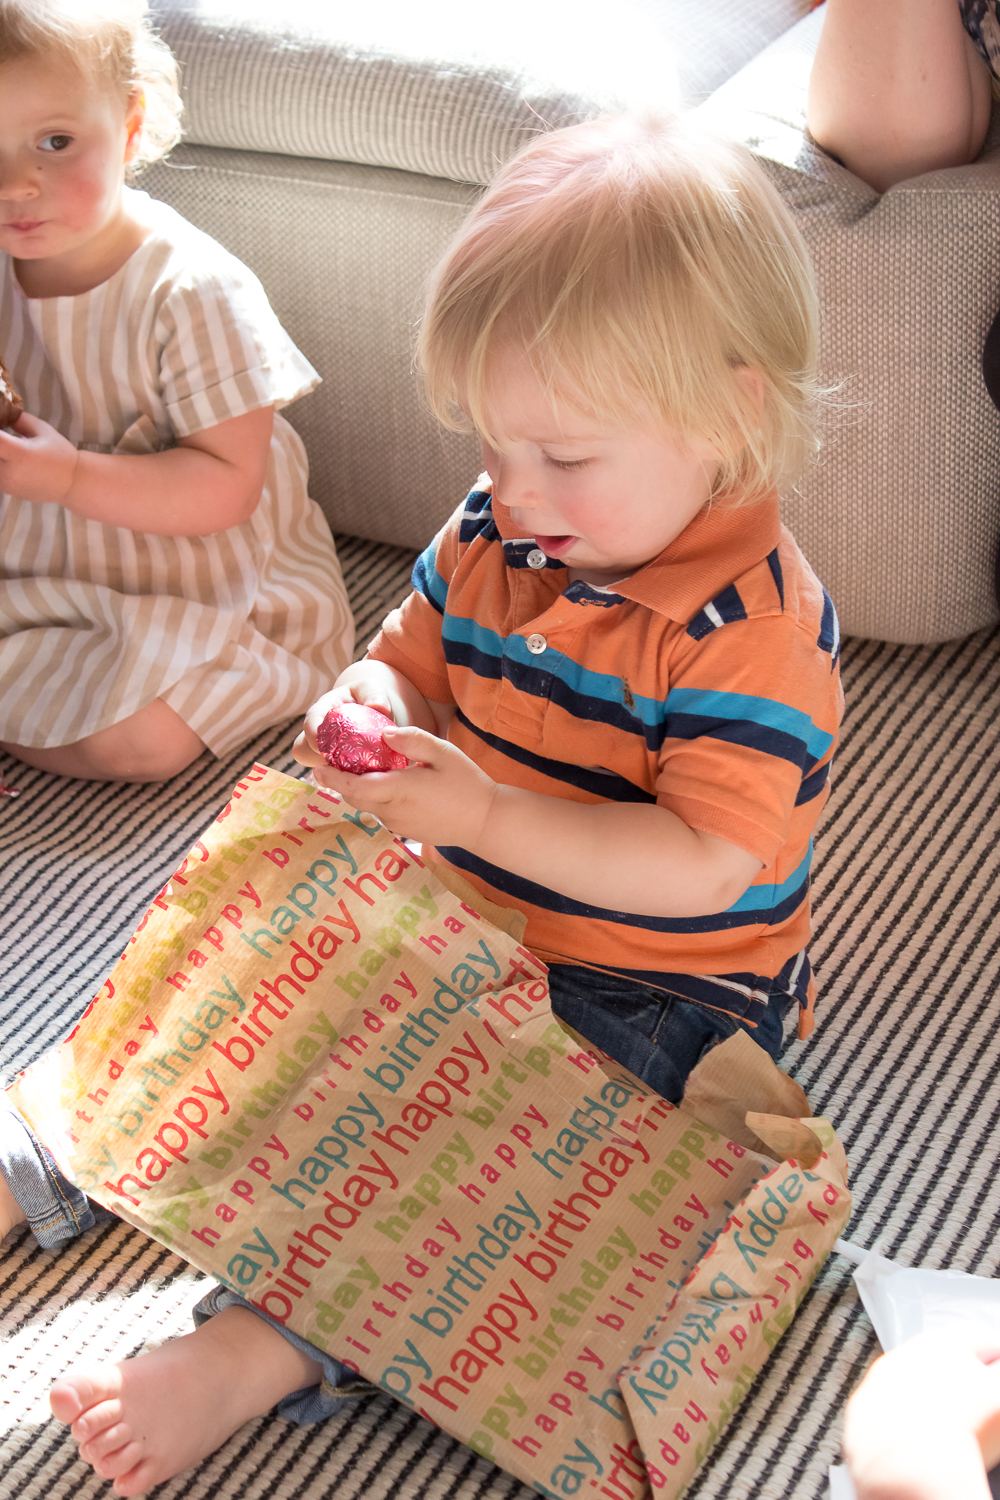 A little boy in a striped orange t-shirt opens a layer of wrapping paper during parce-the-parcel